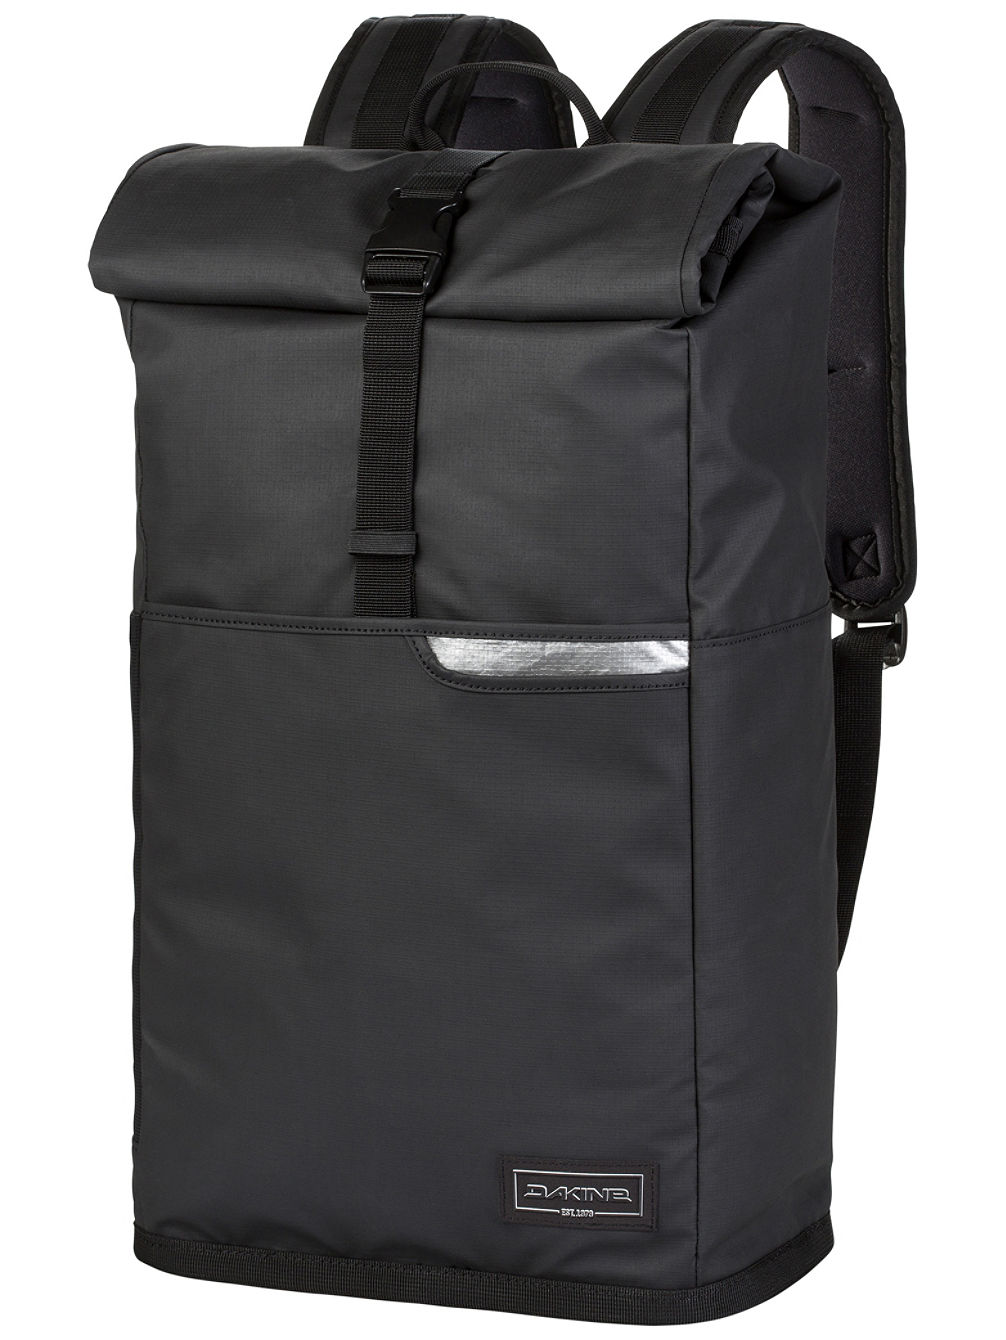 Section Roll Top Wet/Dry 28L Backpack